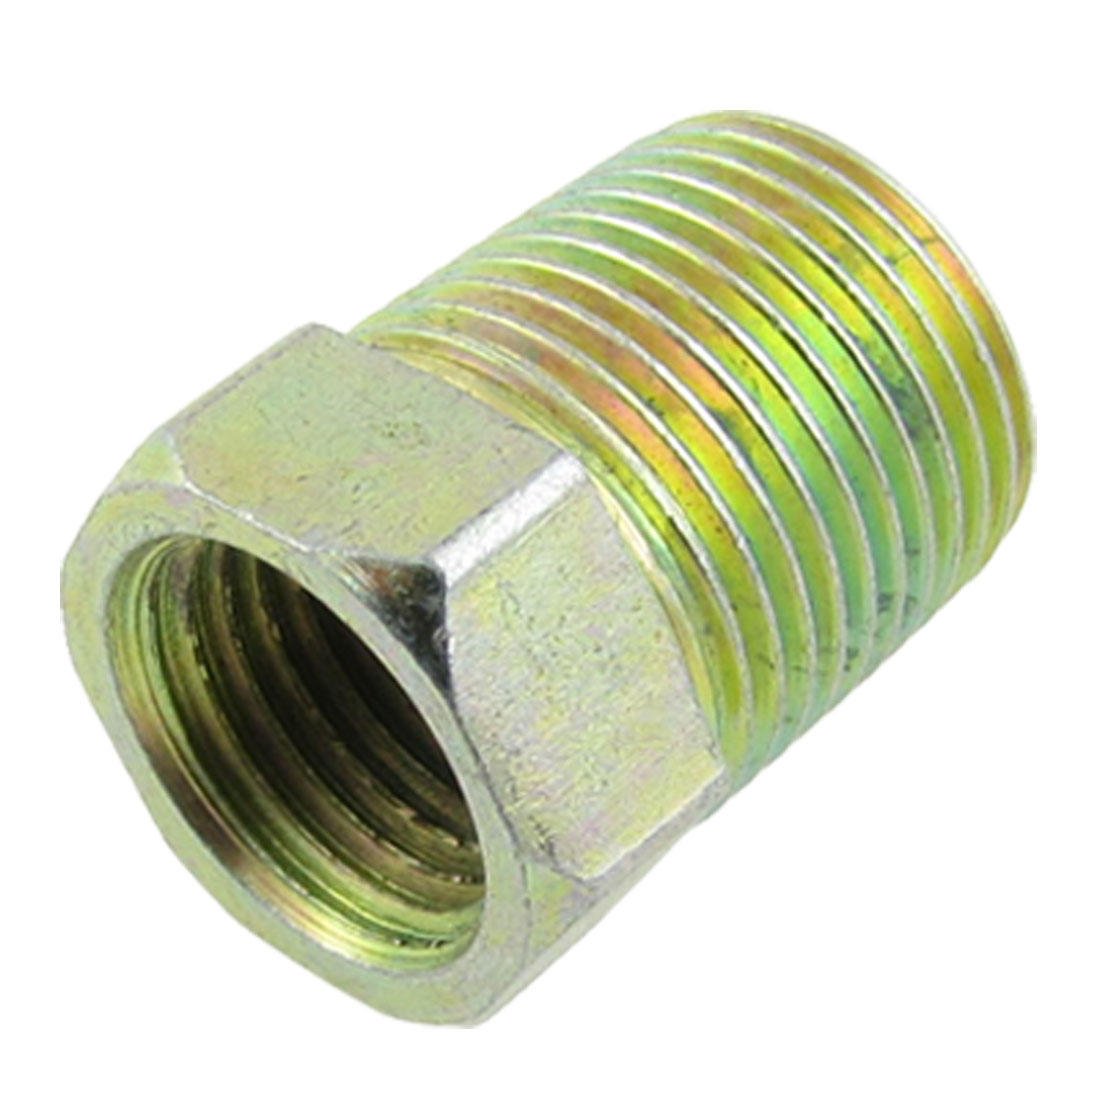 16.5mm x 11.5mm M/F Thread Pipe Nipple Hex Reducing Bushing Connector